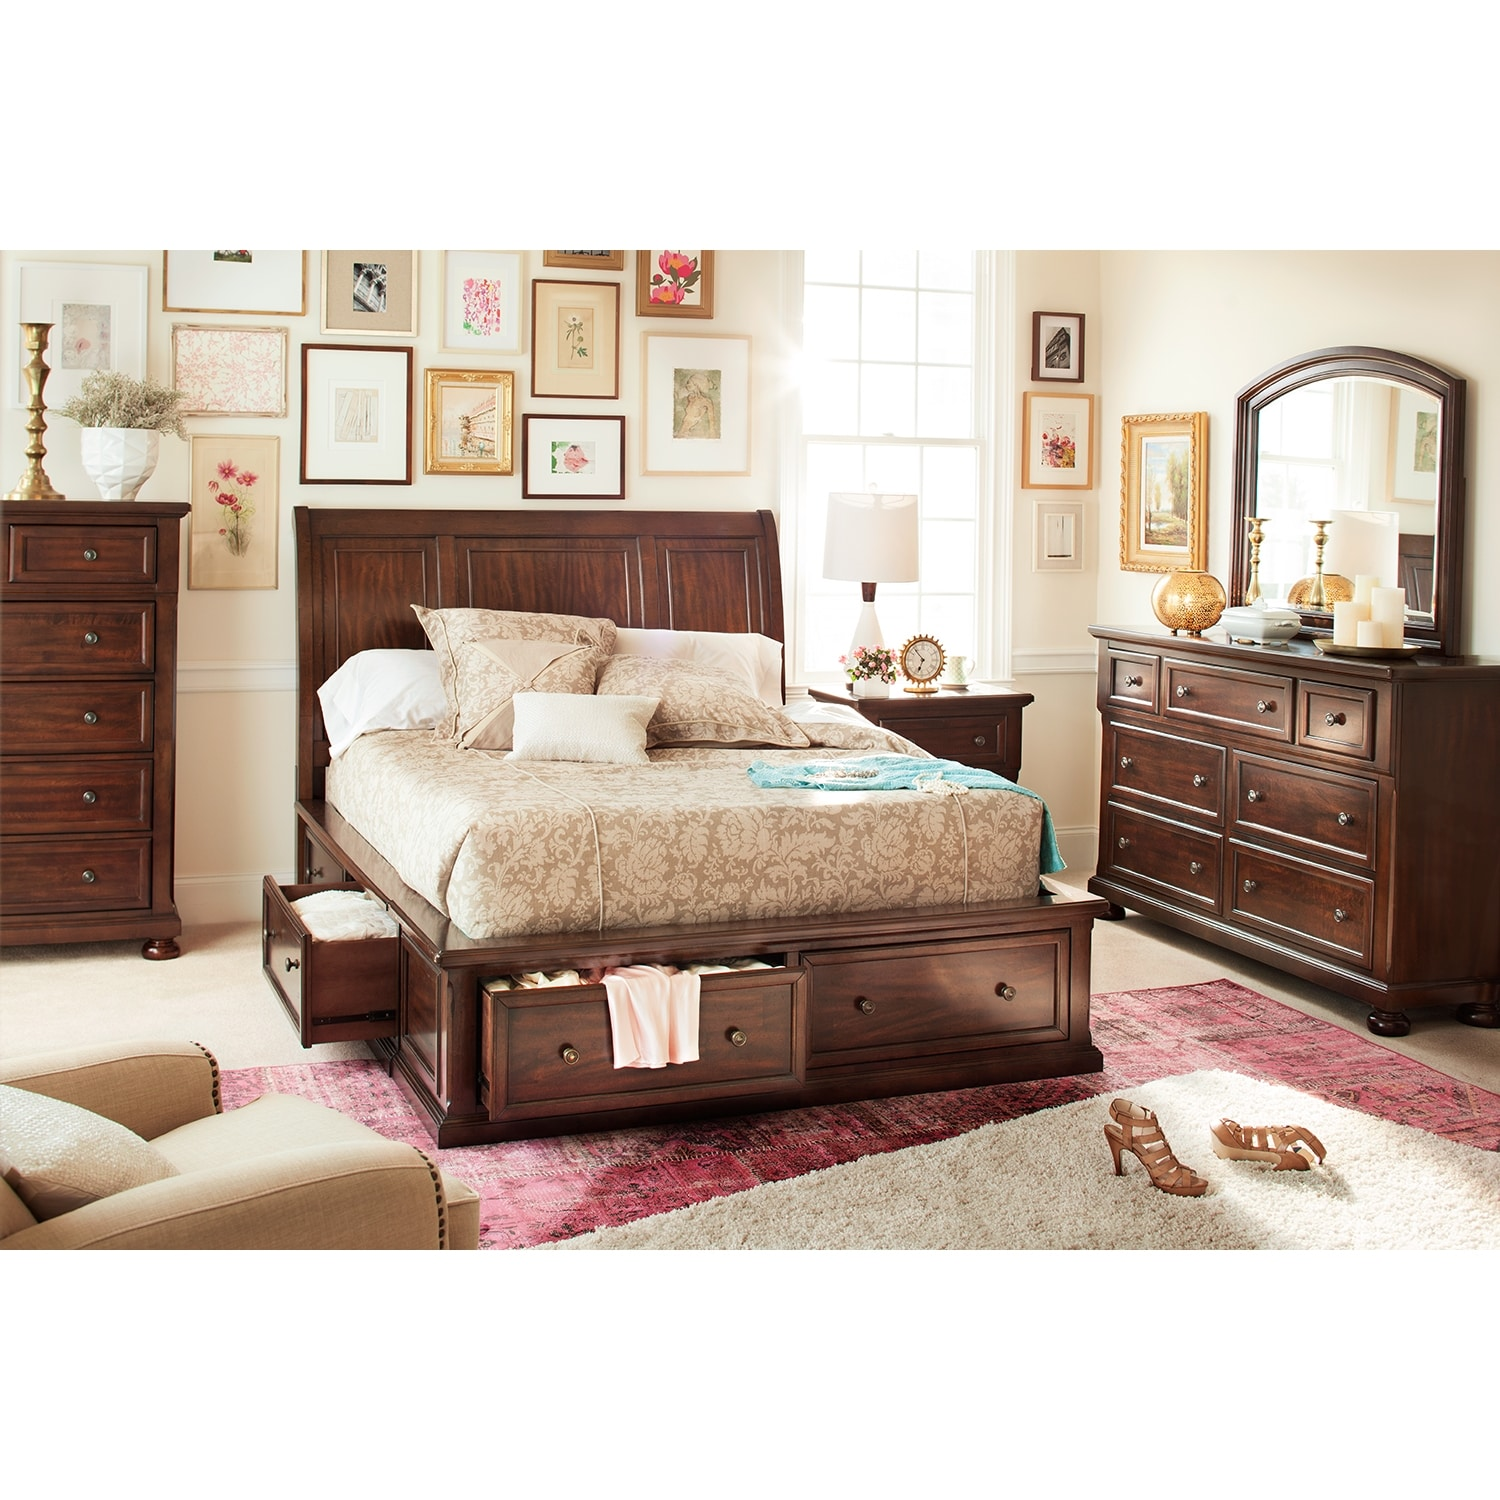 Hanover 7 pc queen storage bedroom value city furniture for Bedroom furniture queen storage bed